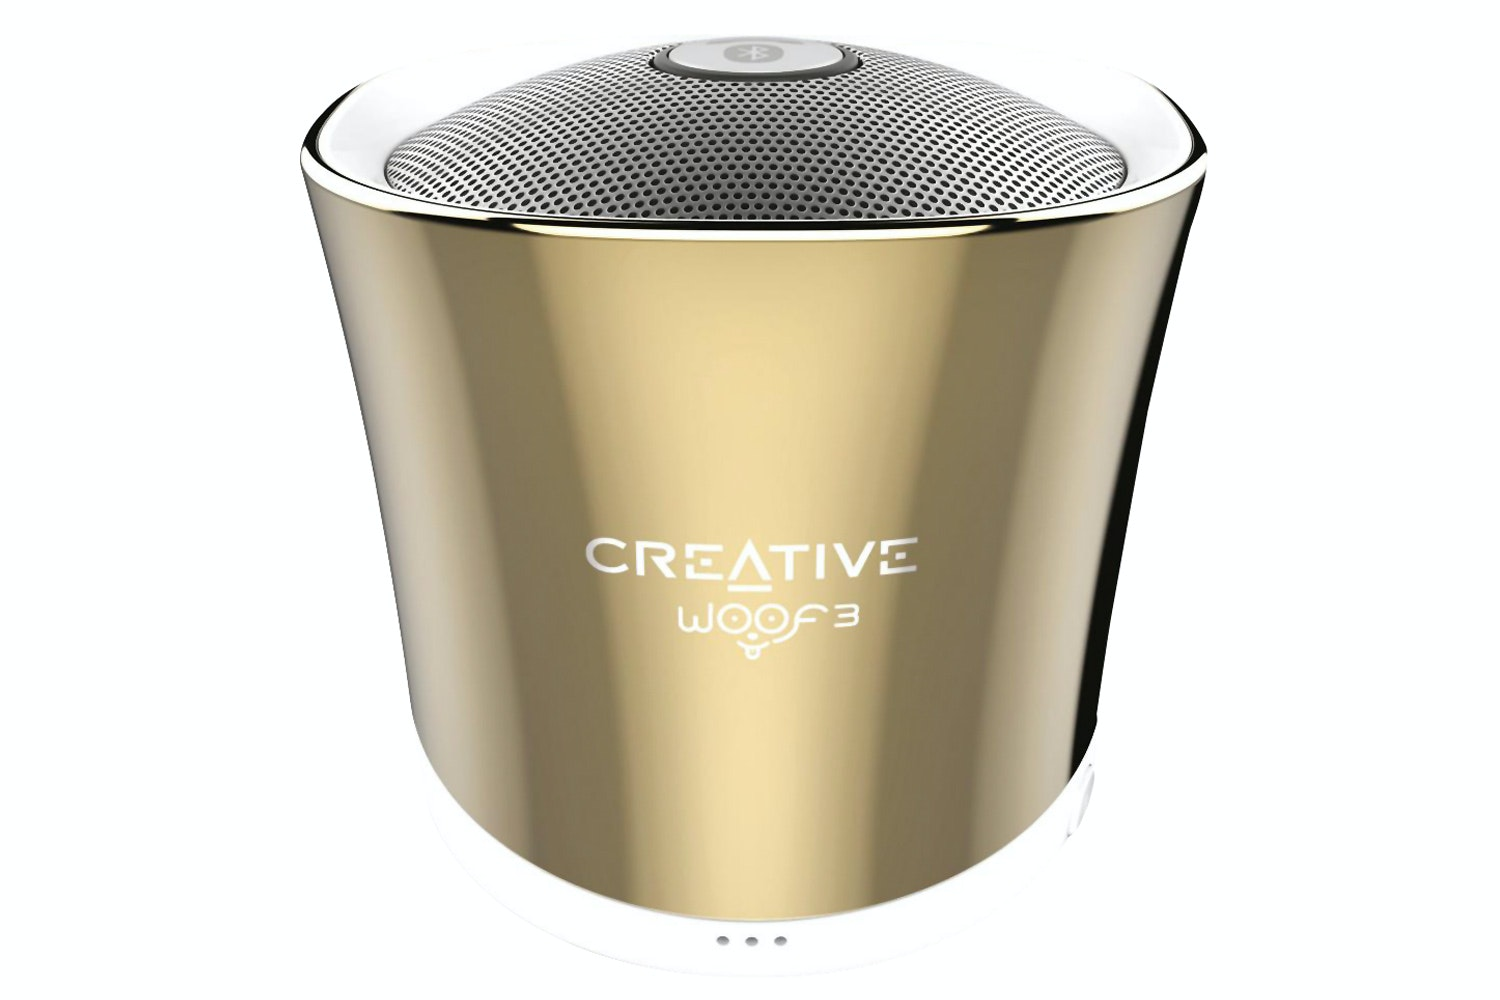 Creative Woof 3 Portable Wireless Bluetooth Speaker | Gold